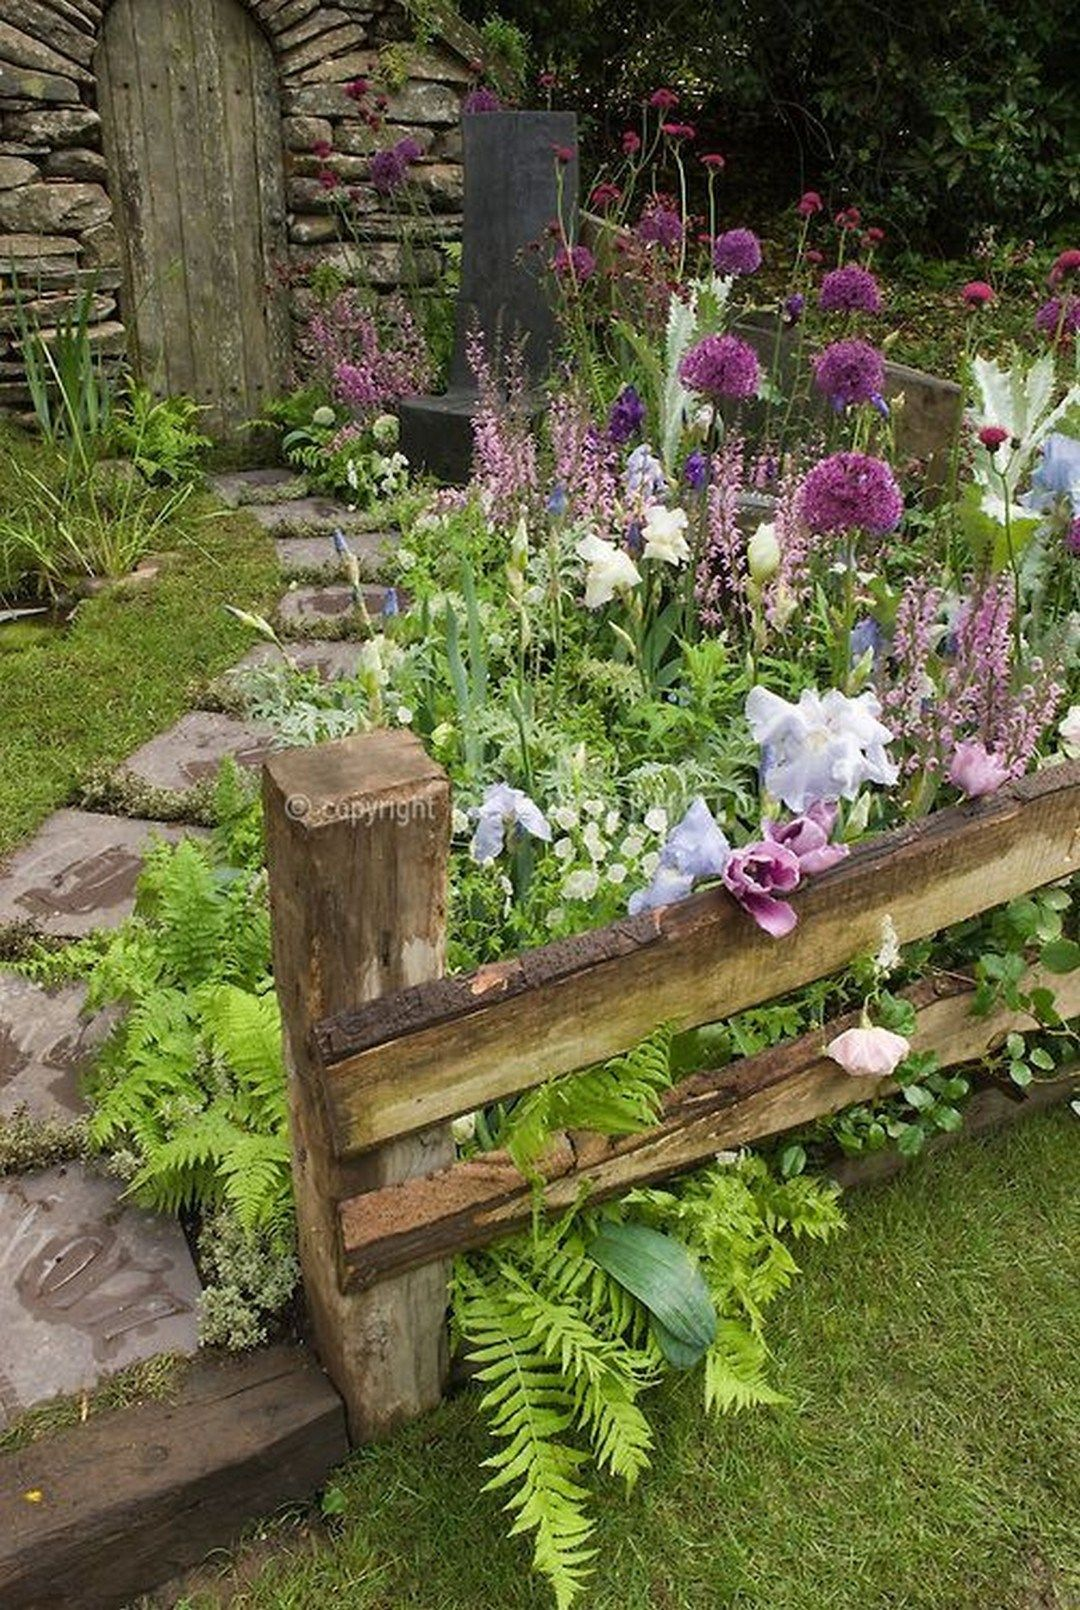 Best DIY Cottage Garden Ideas From Pinterest (20 Cottage